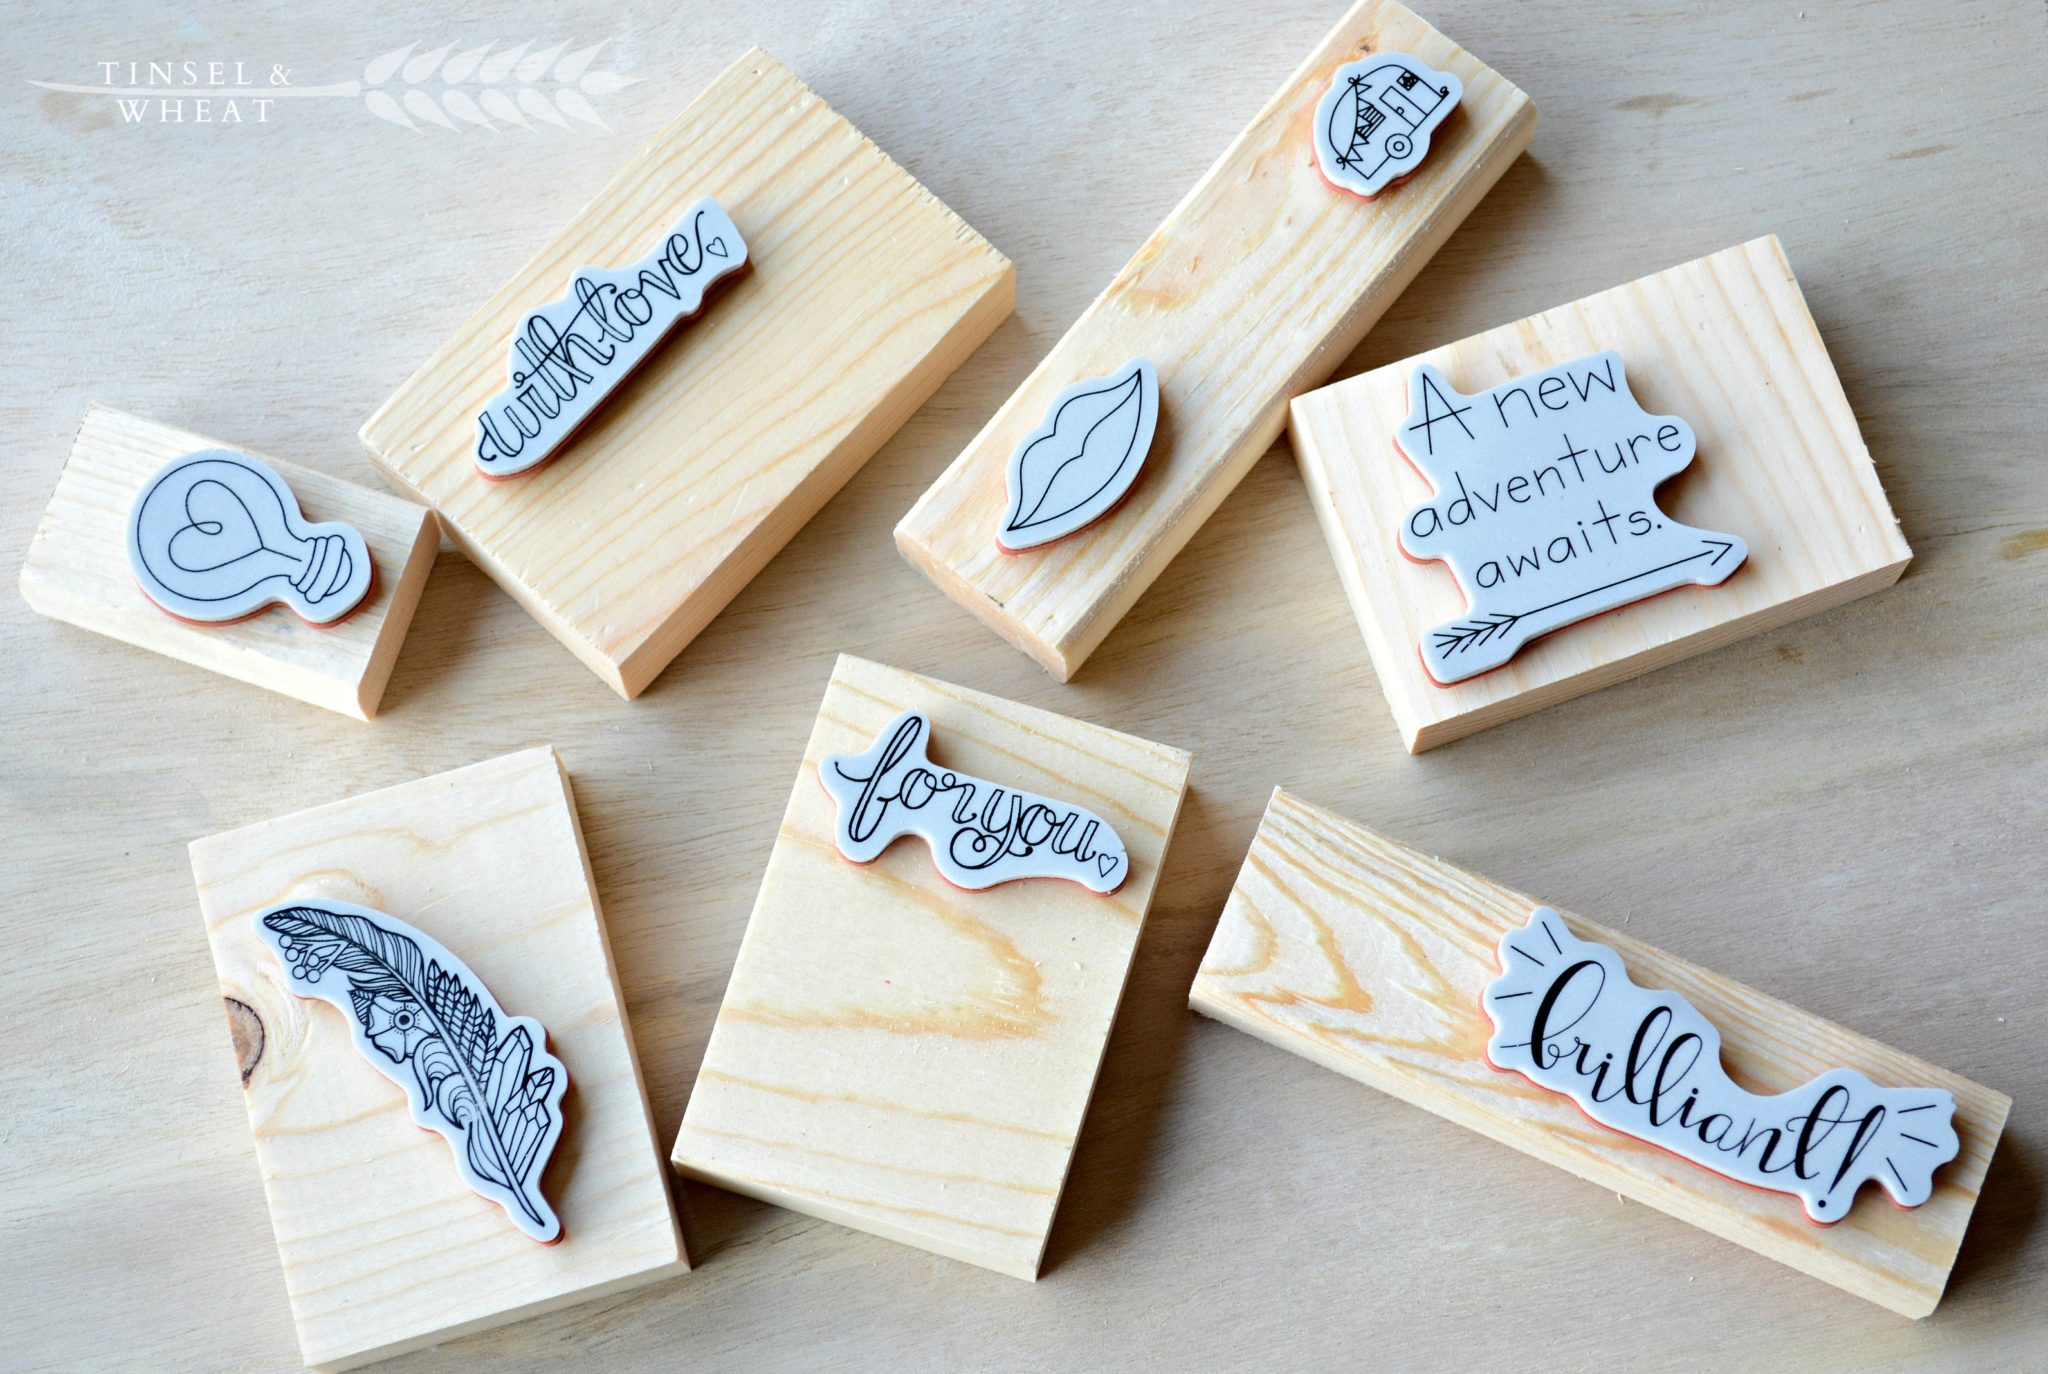 Using scrap wood to make stamps